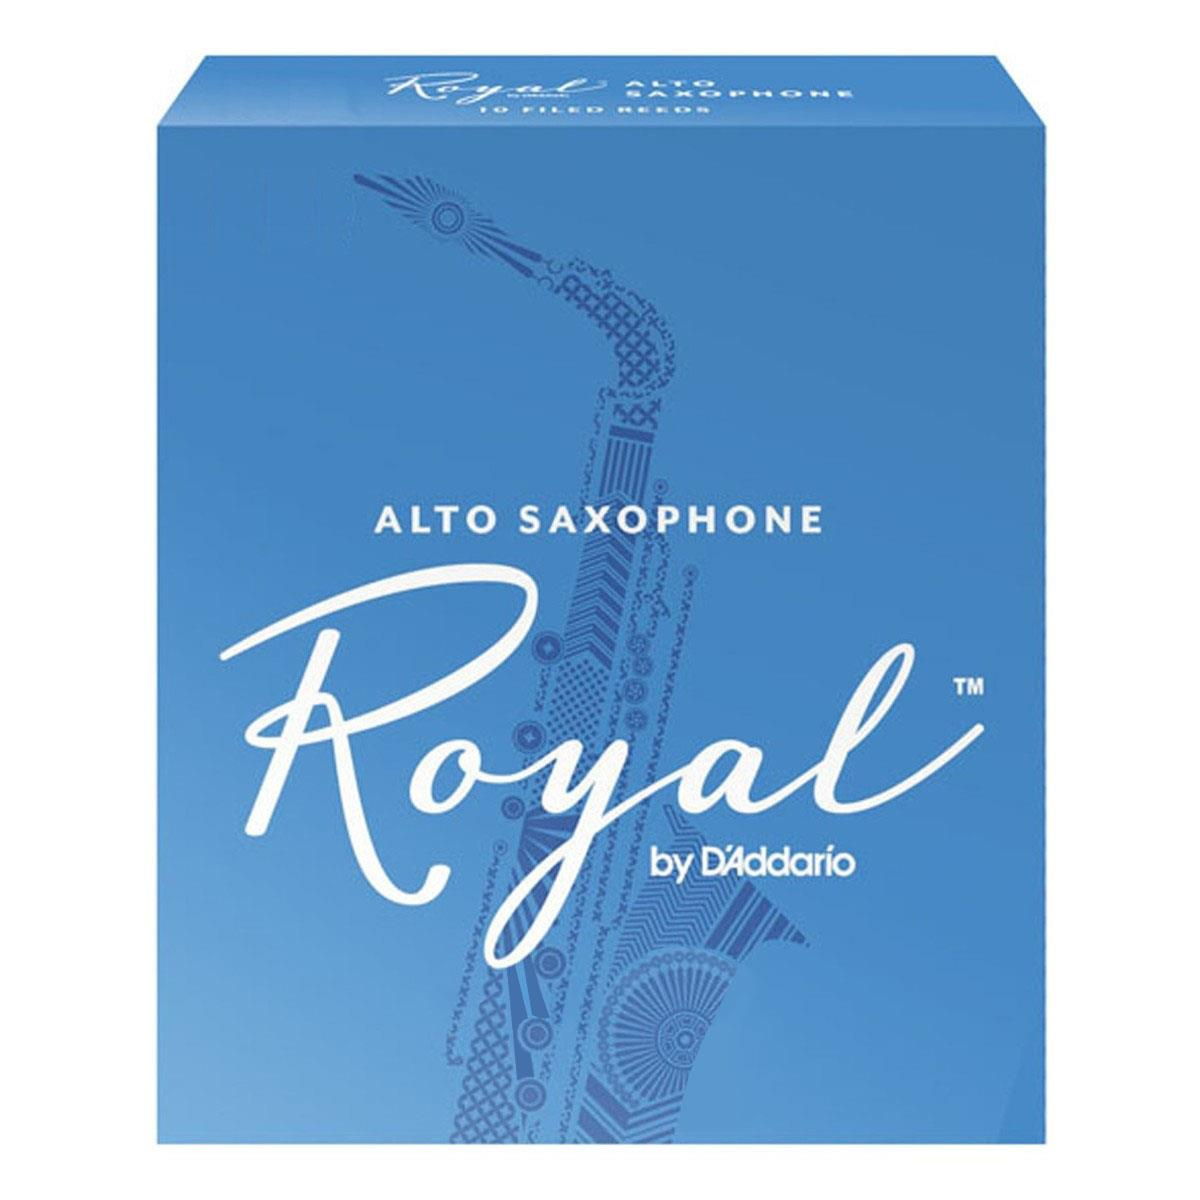 Image of D'Addario Woodwind Royal RJB1015 Alto Sax Reeds Strength 1.5 10-pack 0046716532947